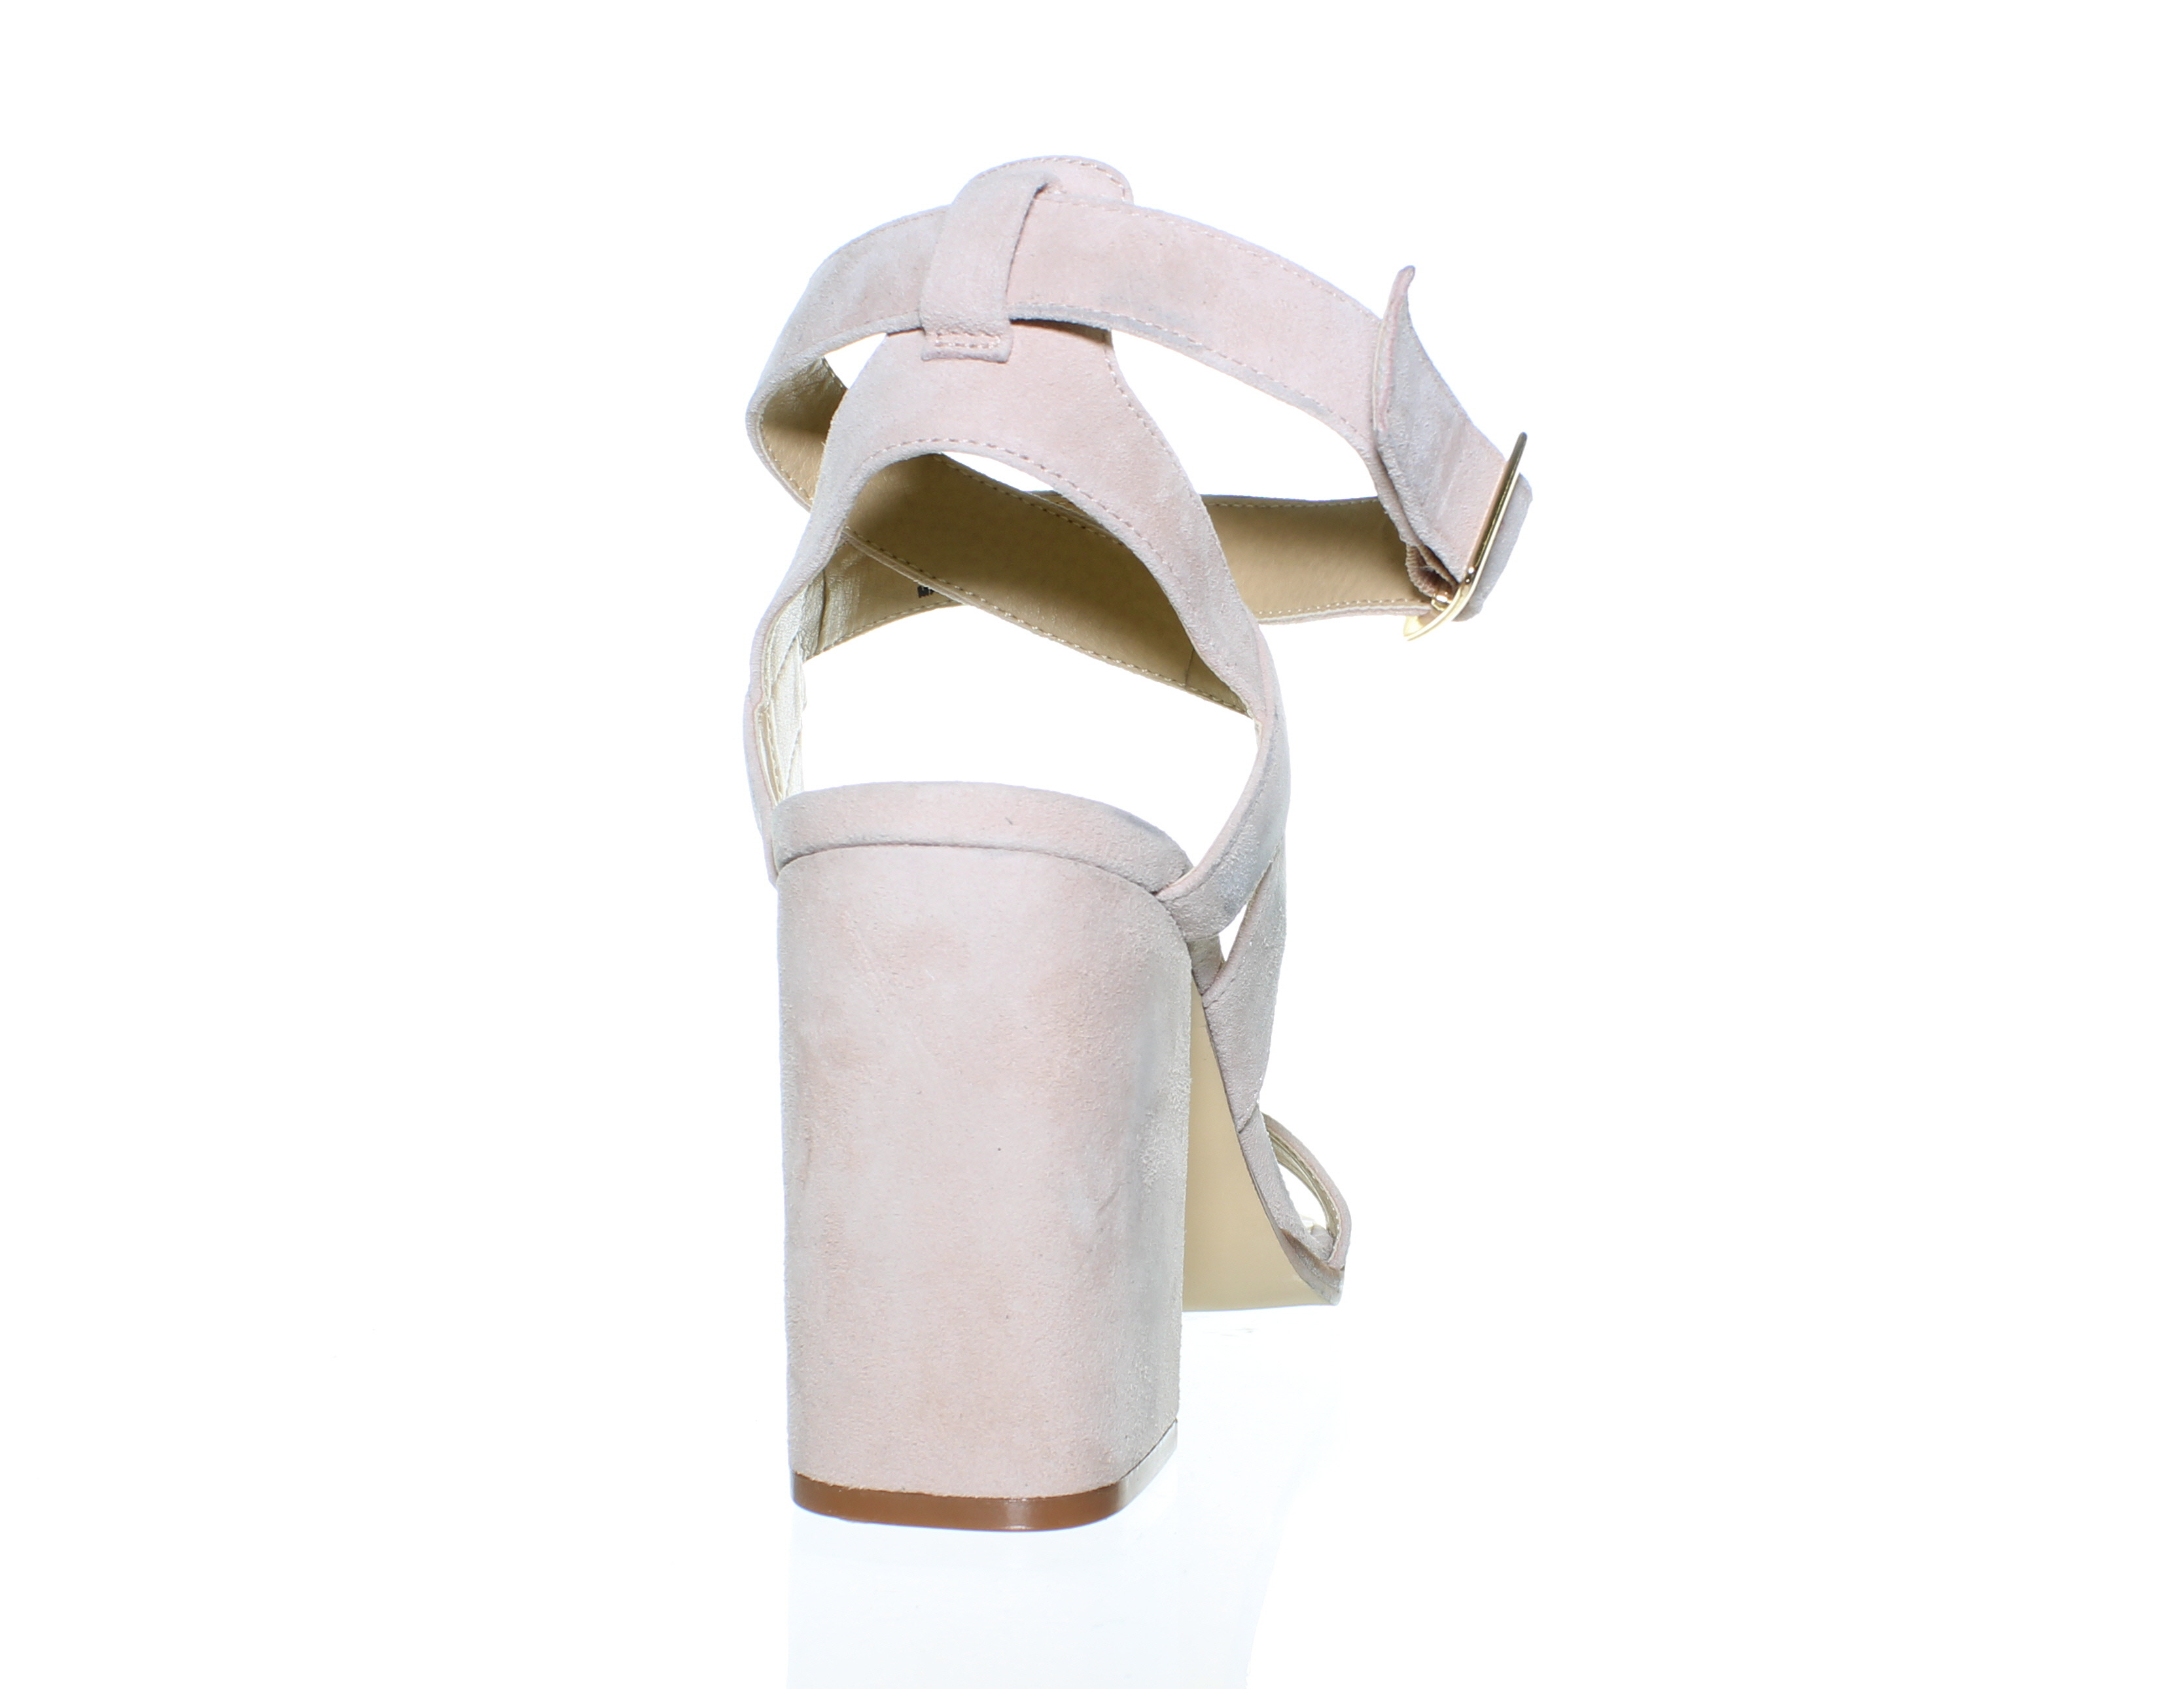 9854ce62423 Chinese Laundry Womens Sitara Rose Suede Ankle Strap Heels Size 10 ...